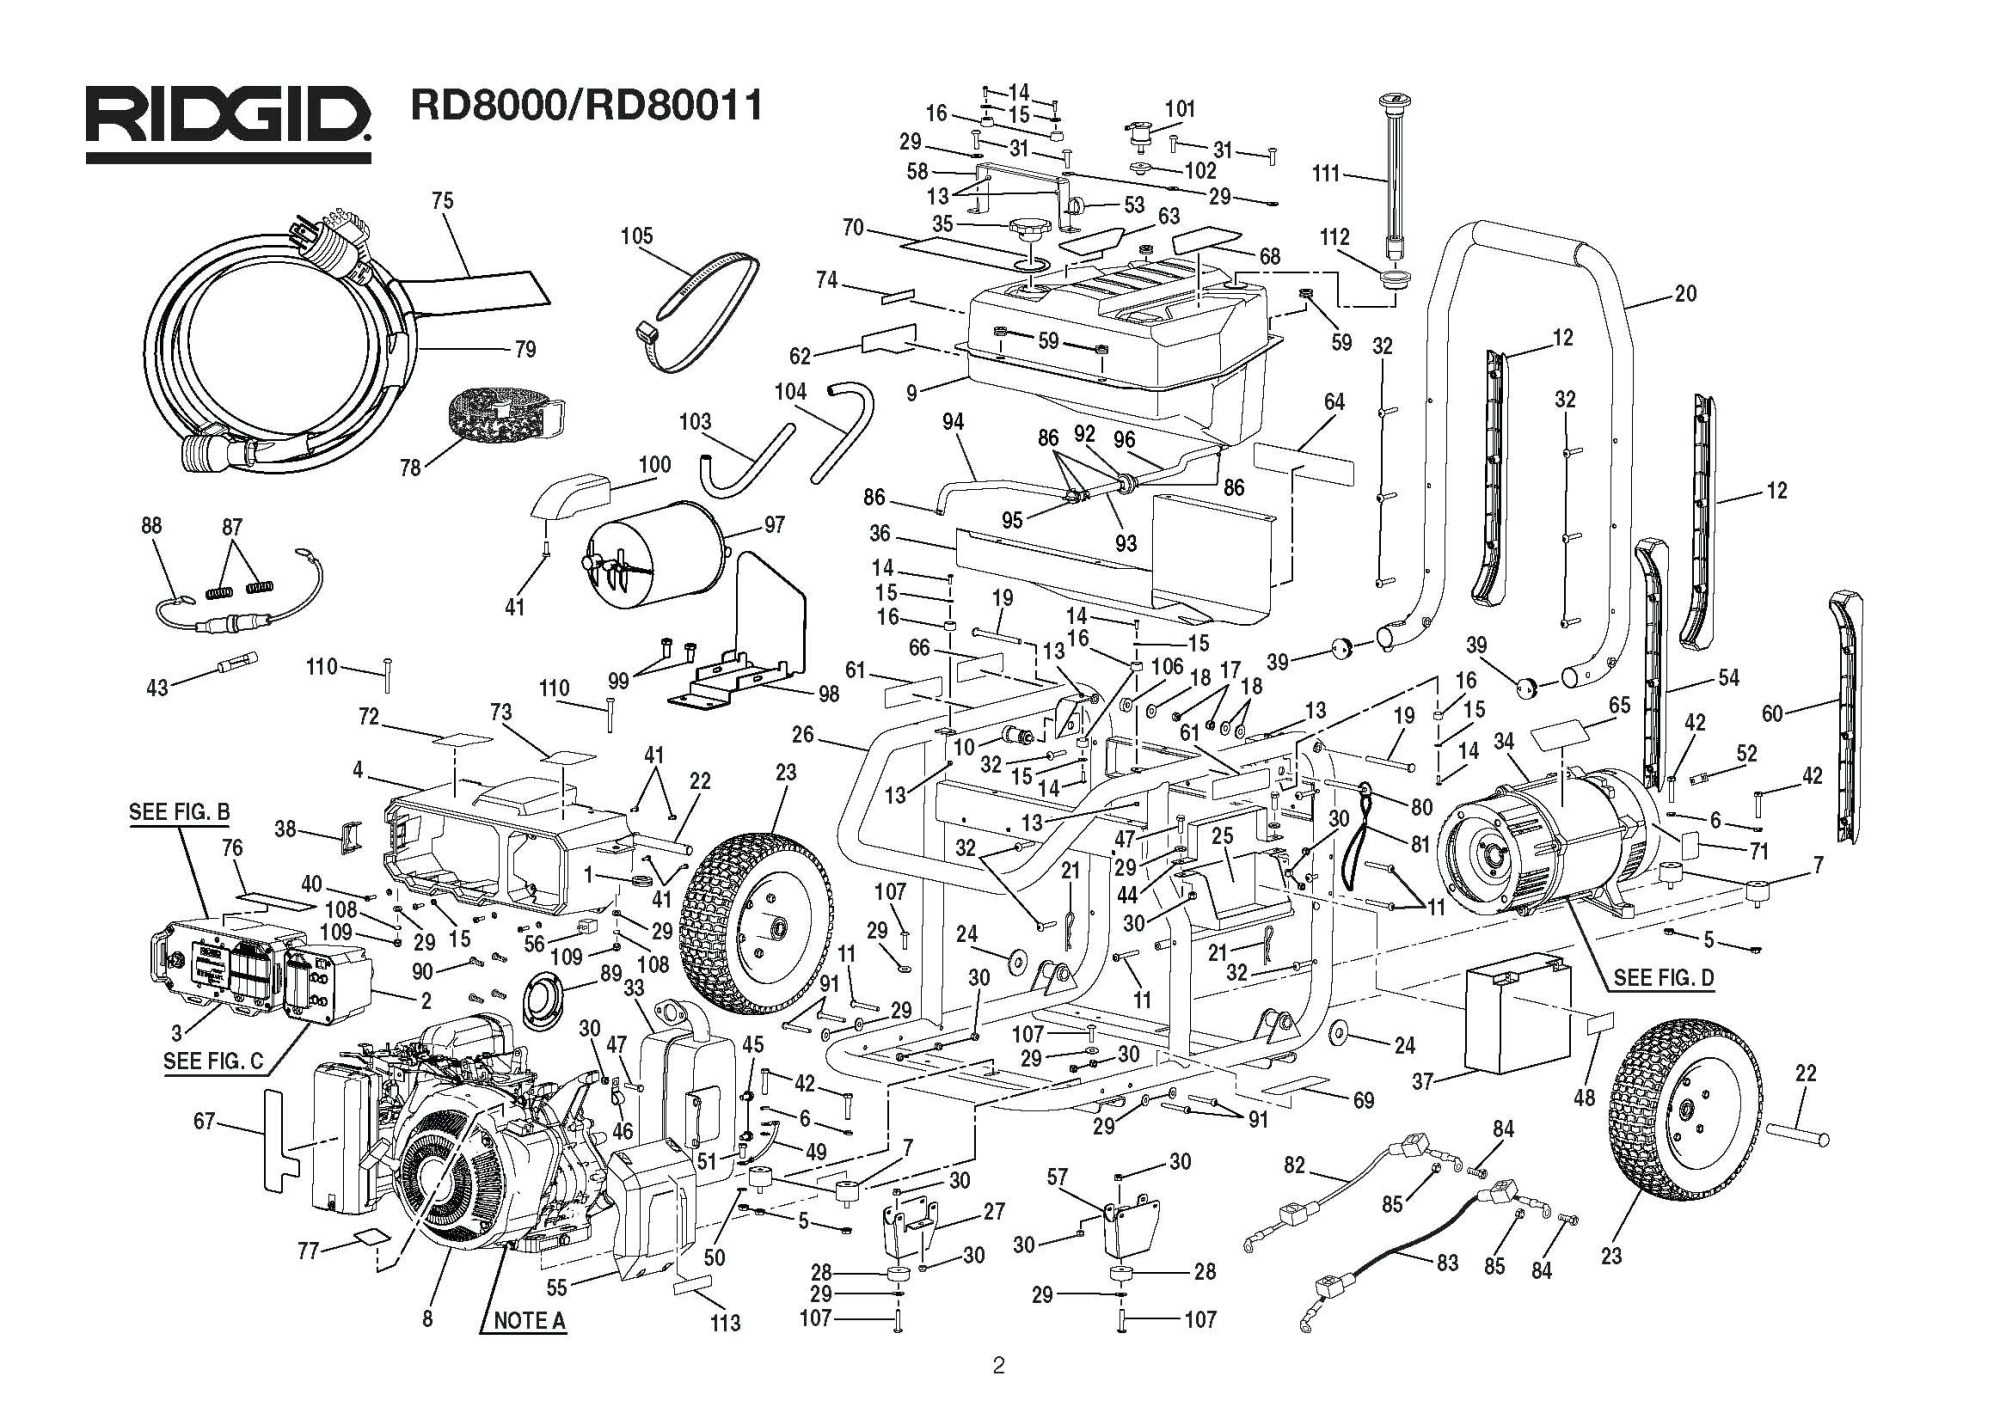 hight resolution of 2009 subaru engine diagram wiring diagram inside 2009 subaru engine diagram